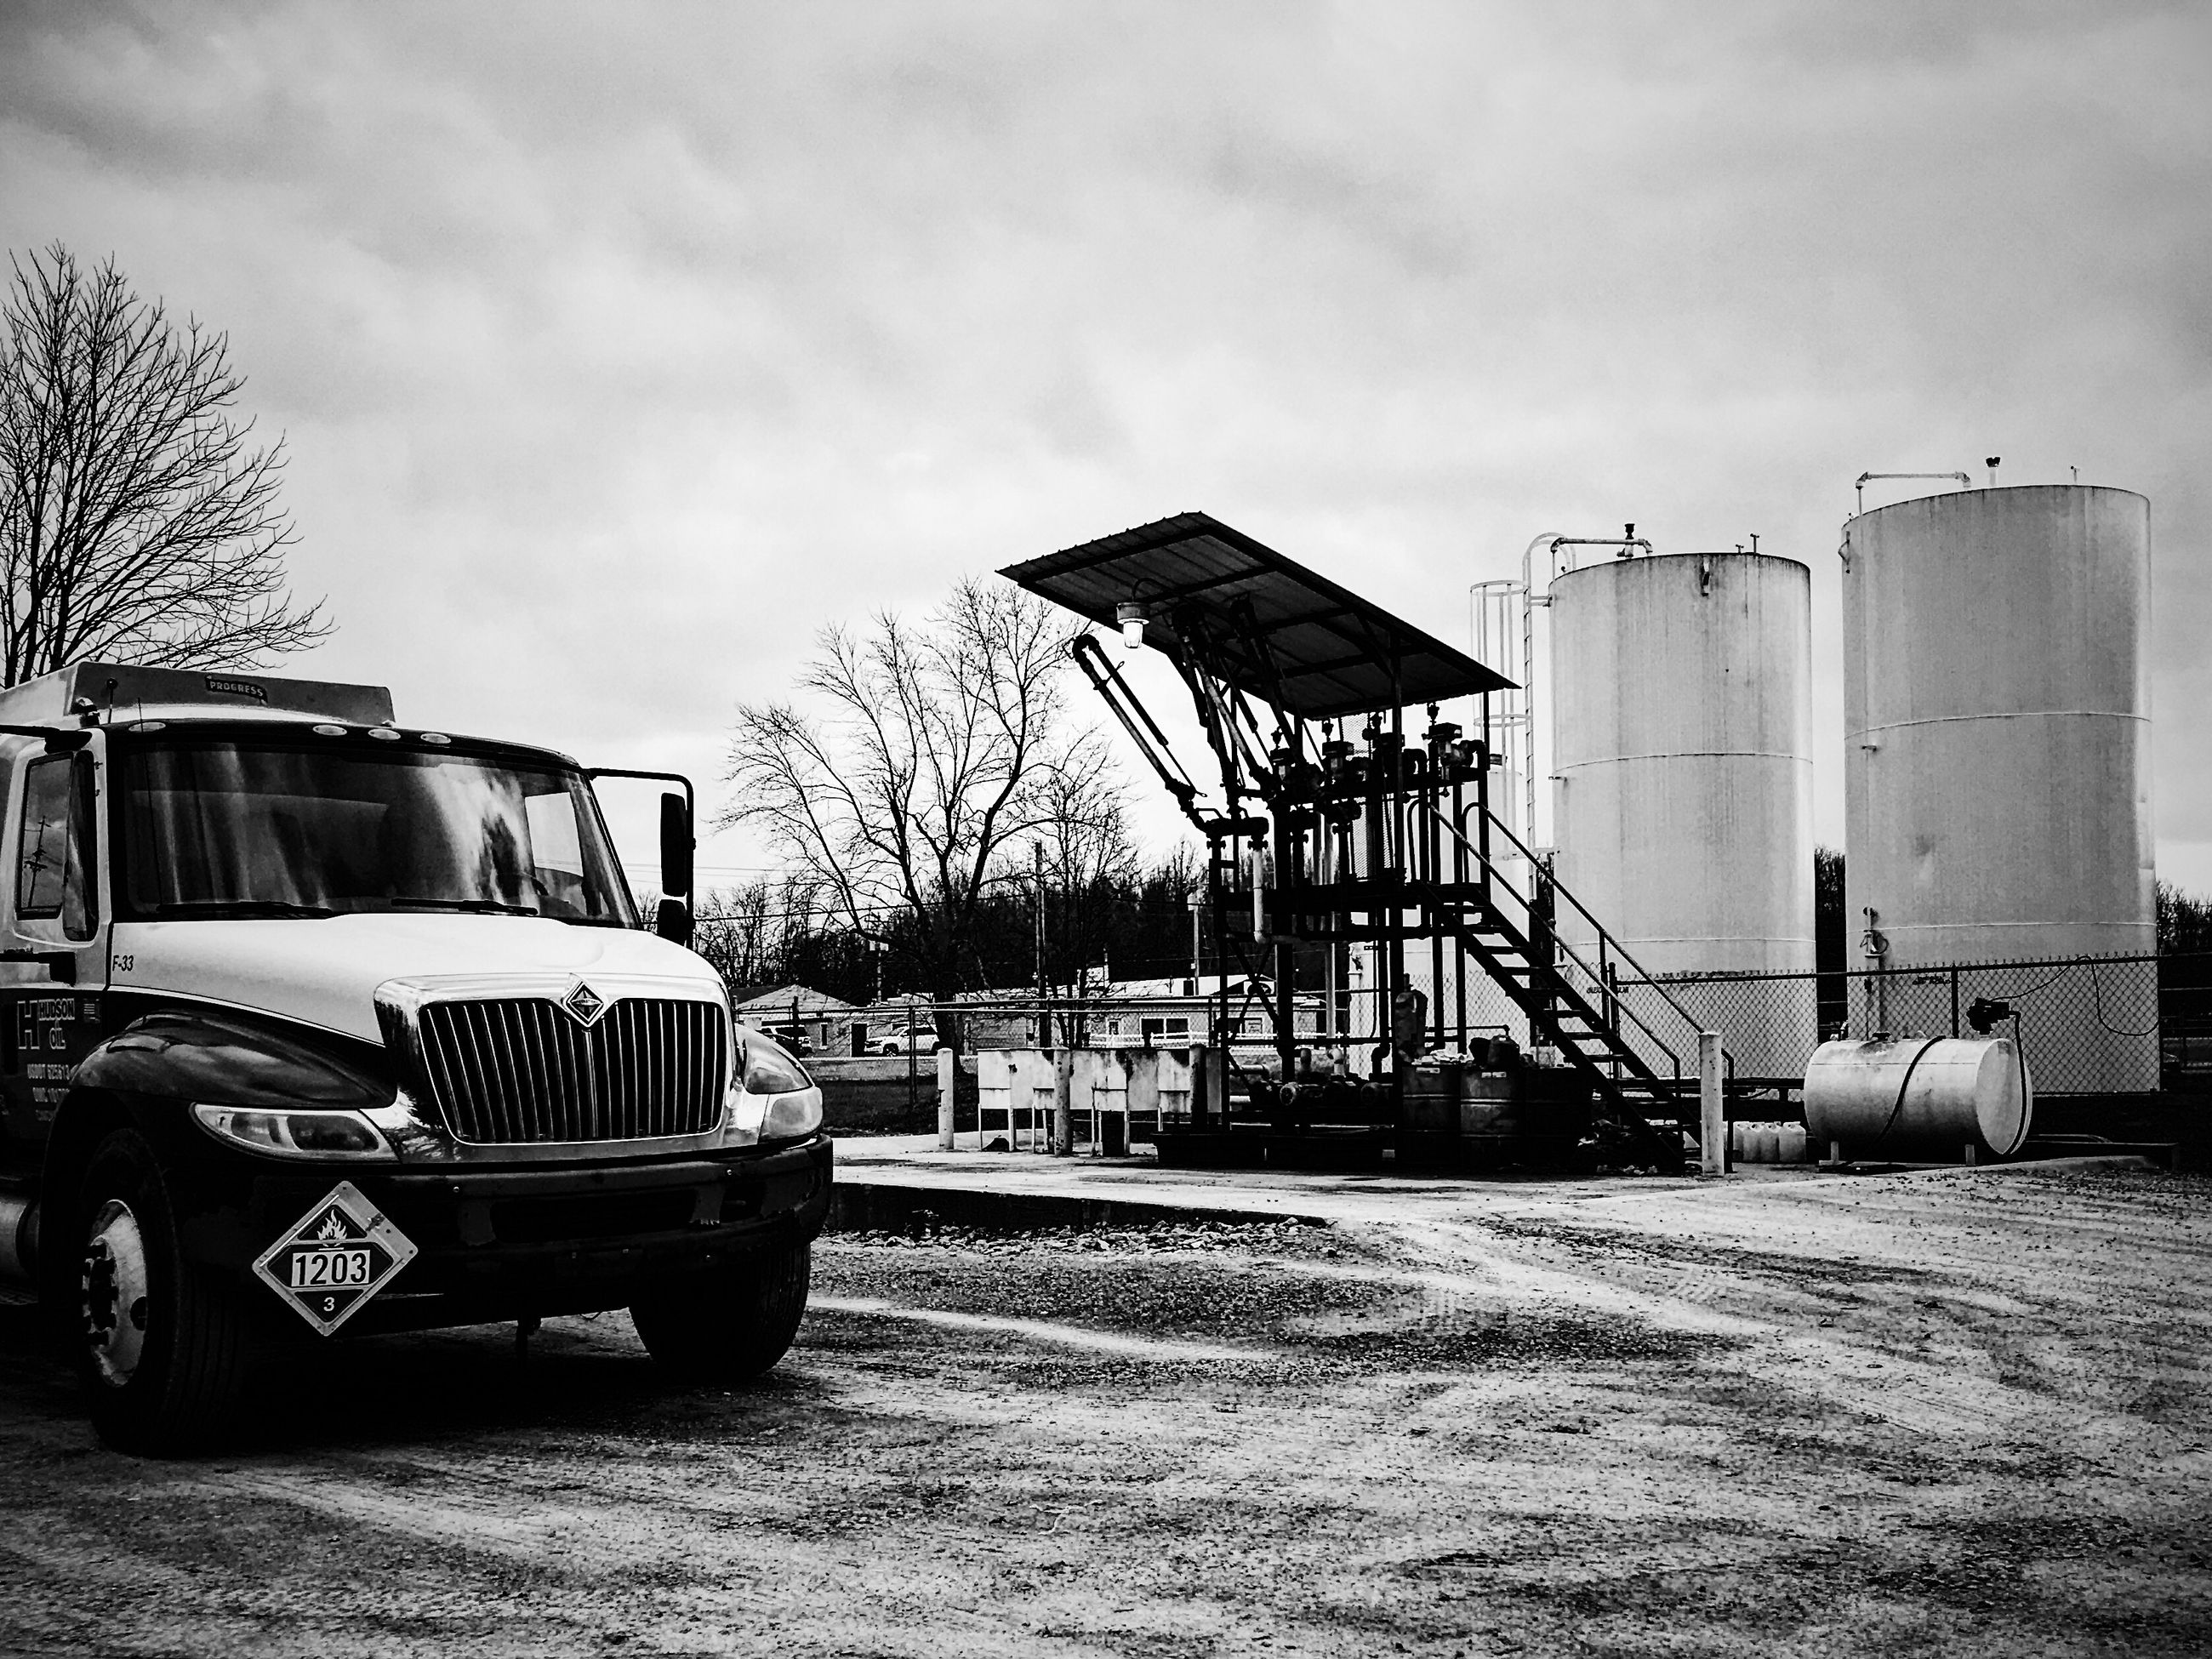 land vehicle, transportation, mode of transport, car, sky, built structure, no people, outdoors, building exterior, architecture, day